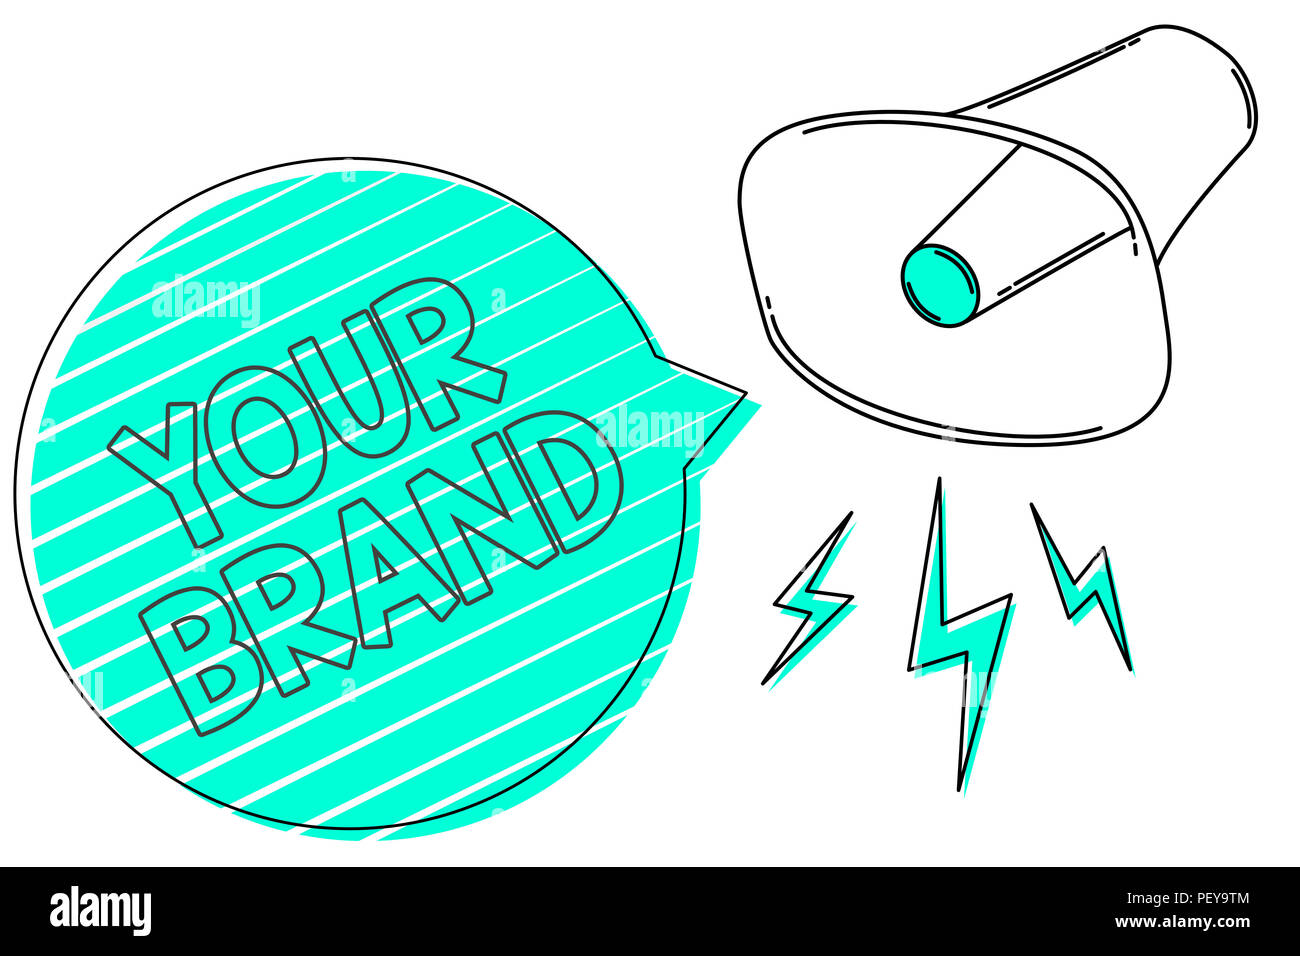 Private Label Brand Stock Photos & Private Label Brand Stock Images ...